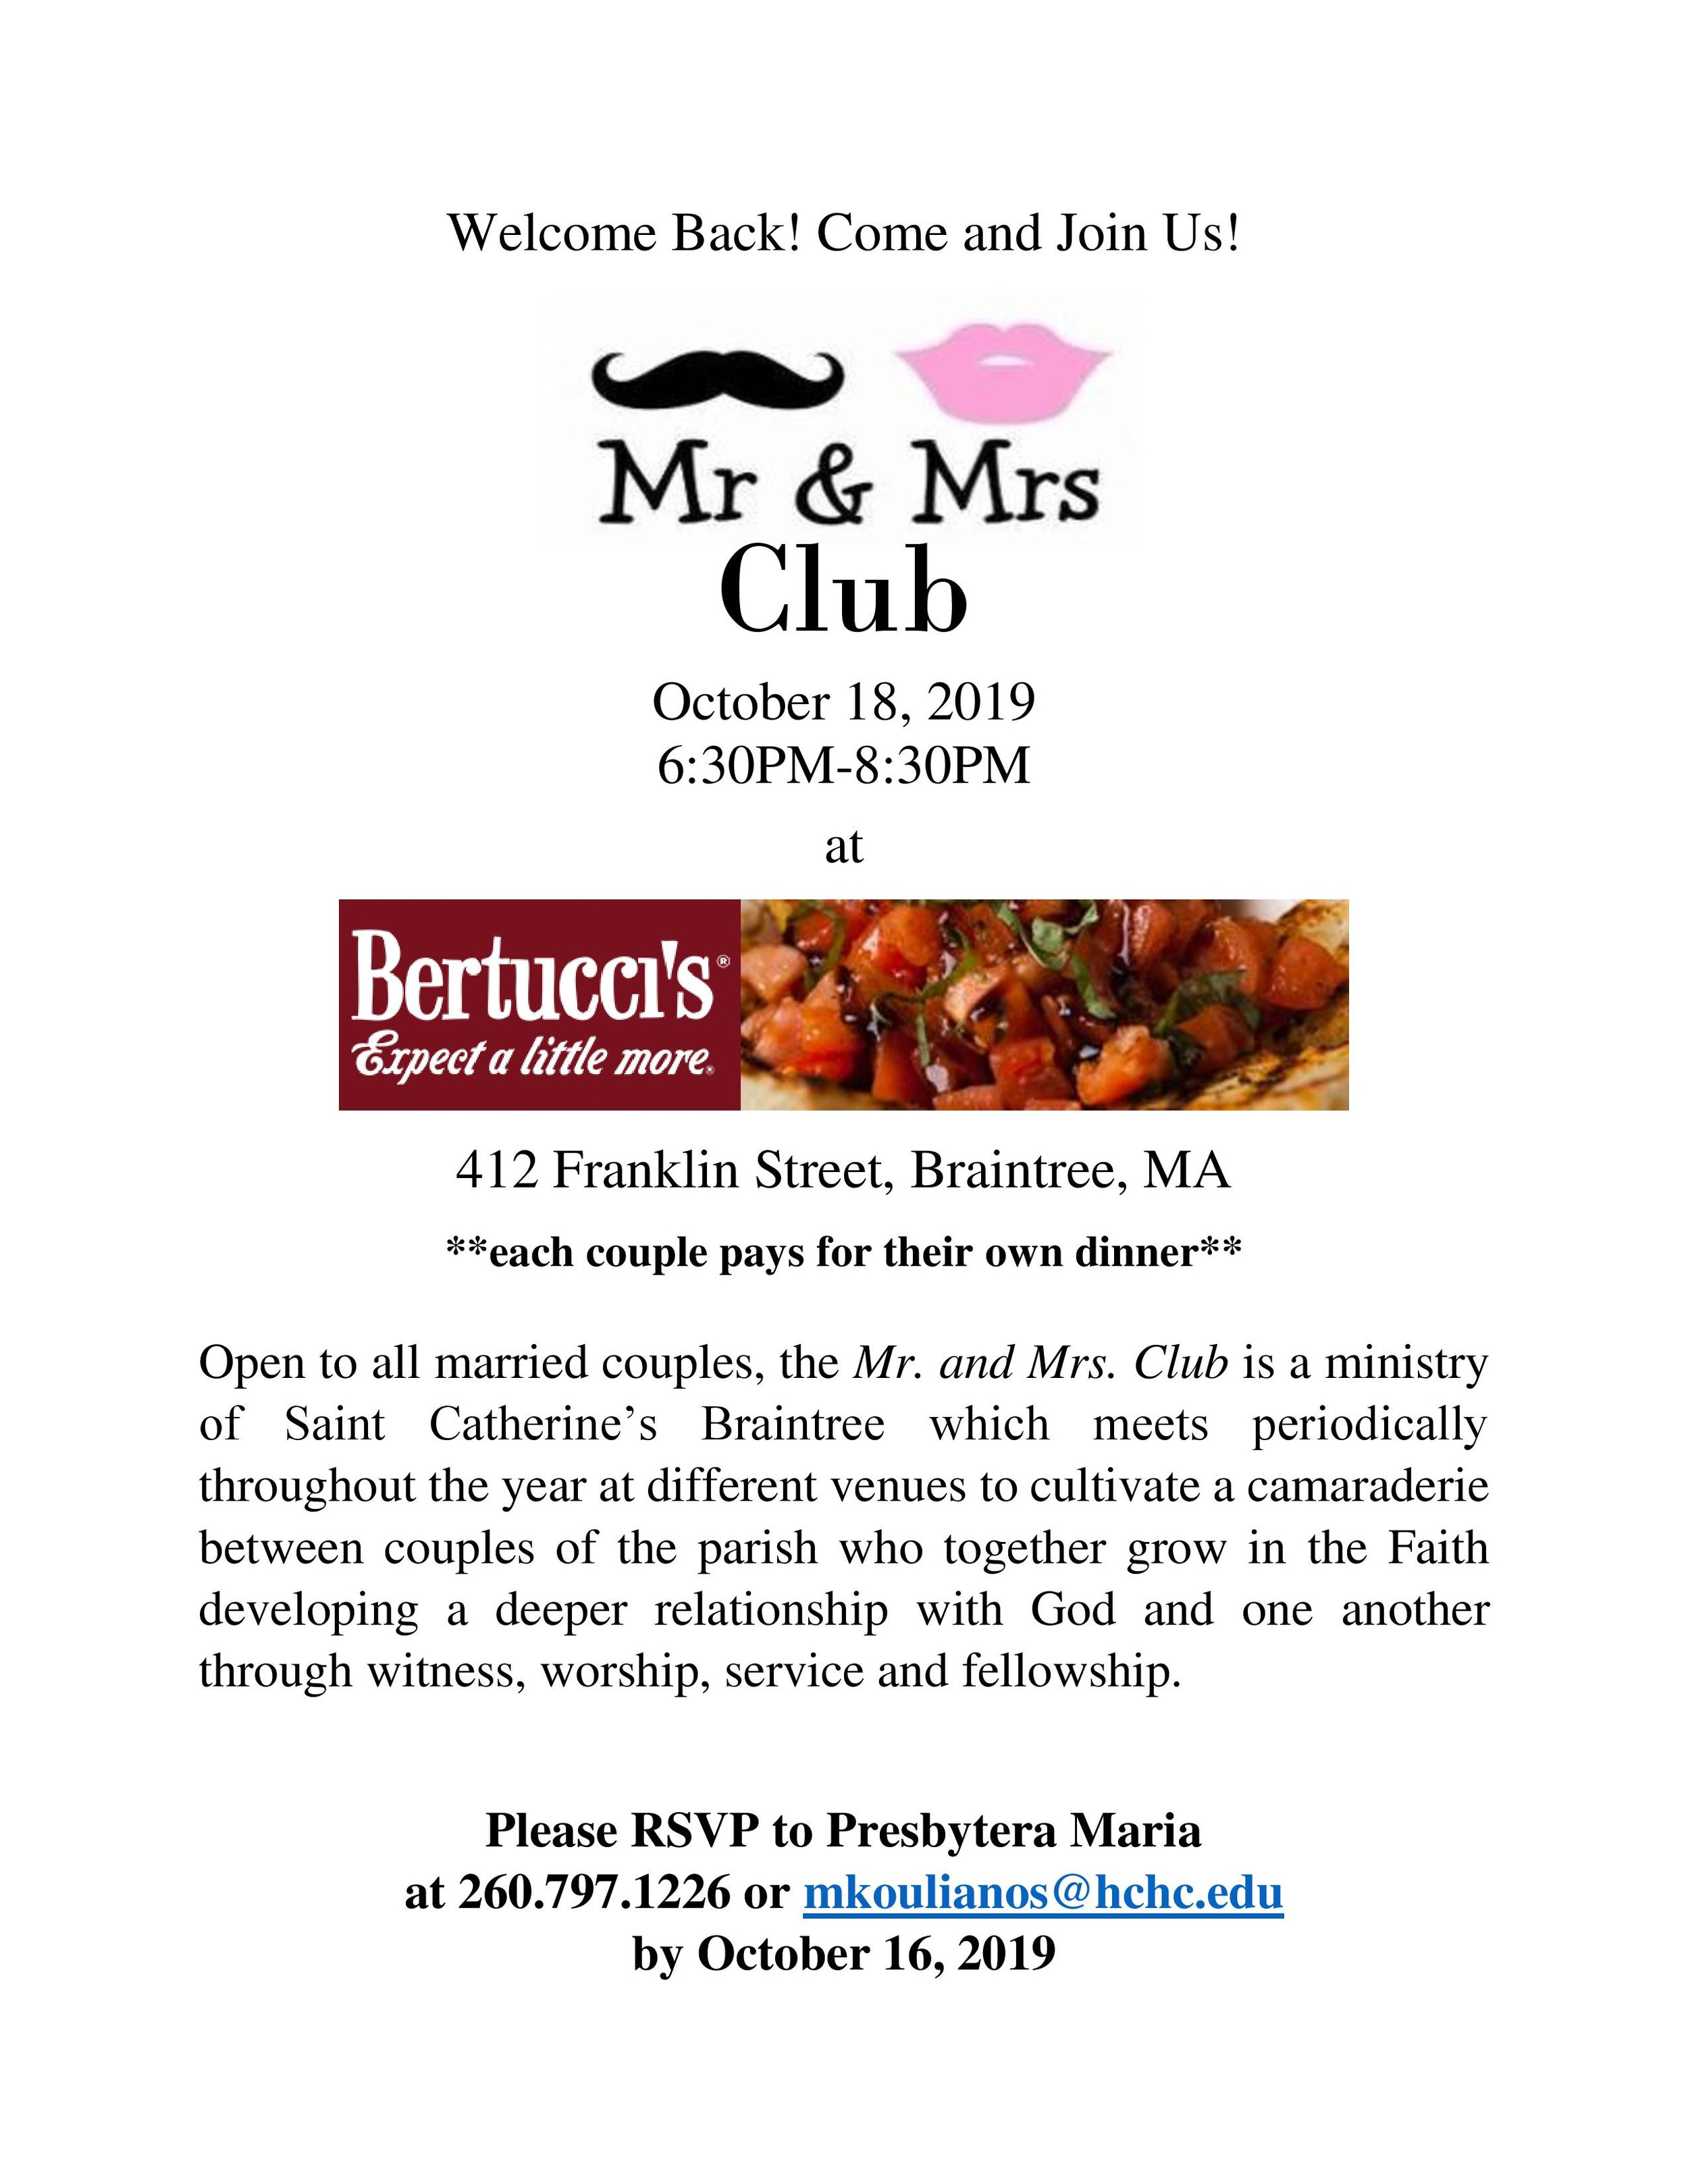 Mr and Mrs Club 2019-page-001.jpg